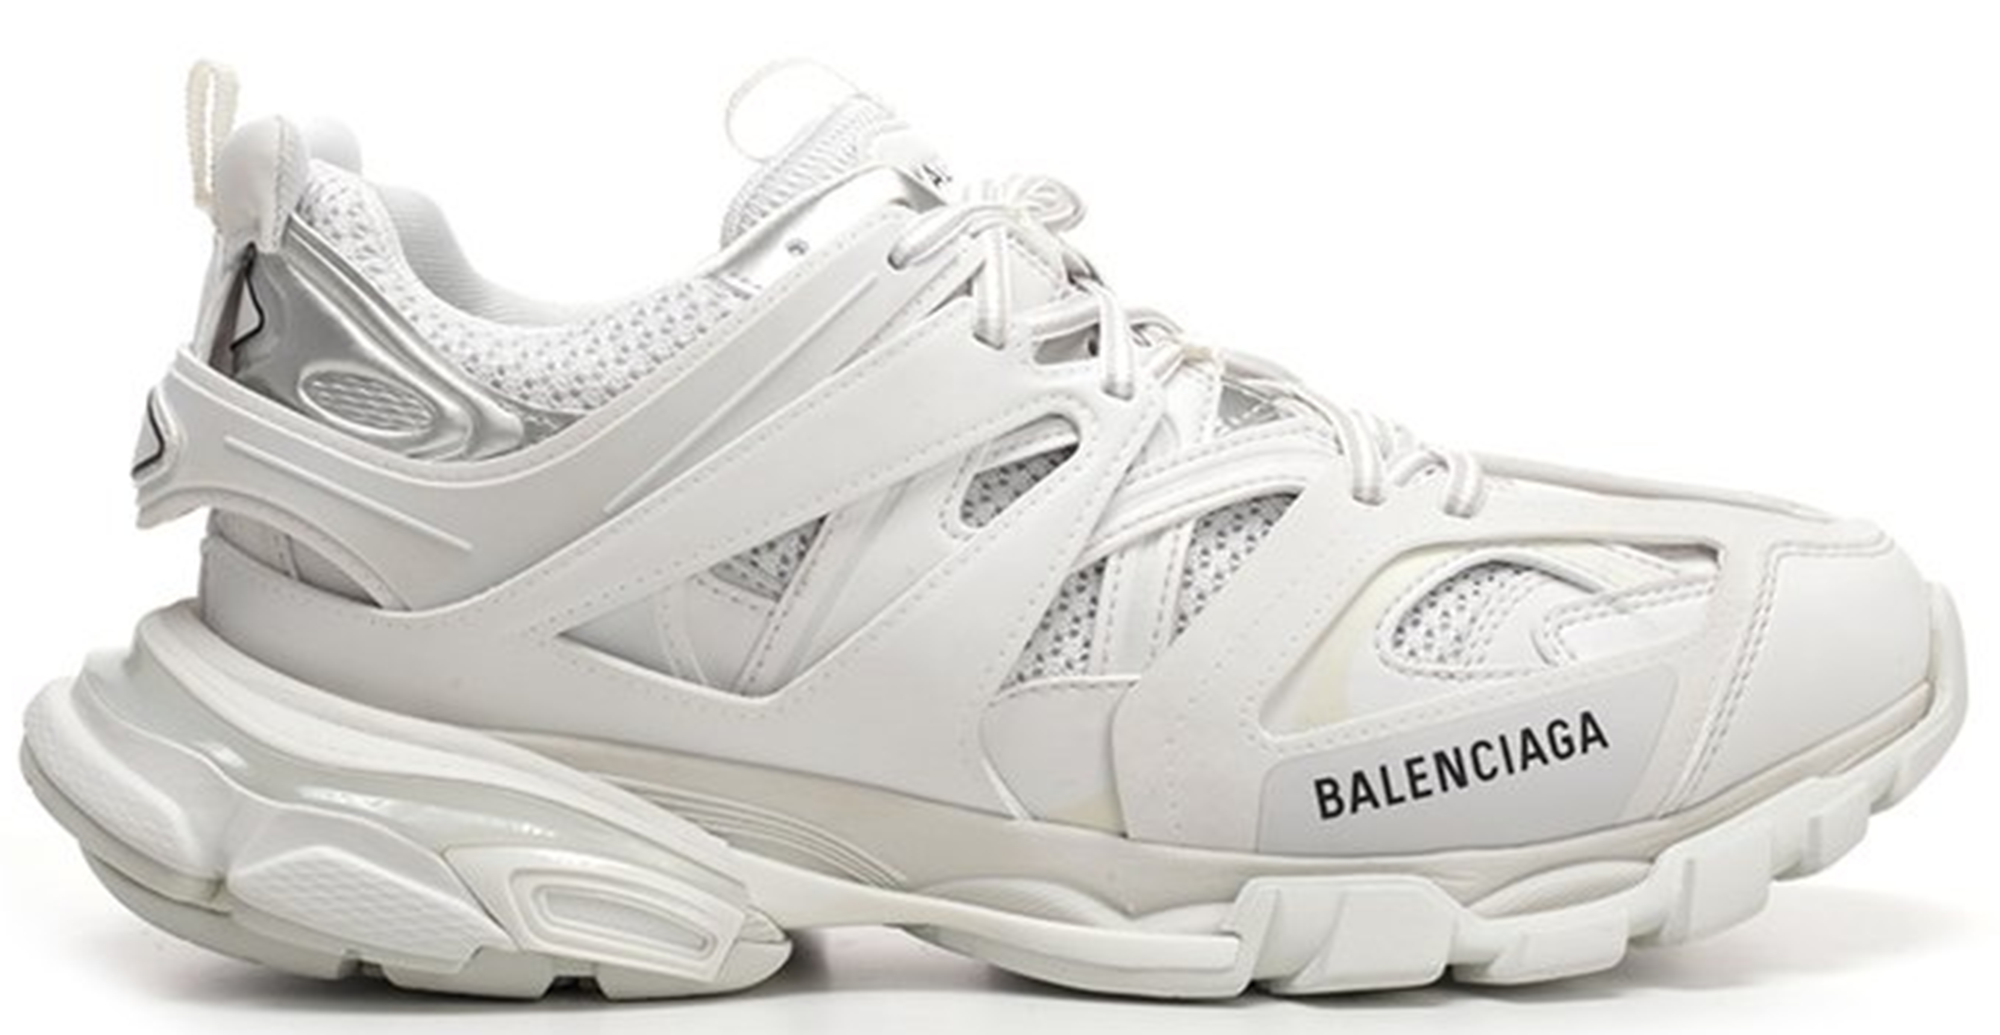 5b23cd various styles fake balenciaga track sneakers